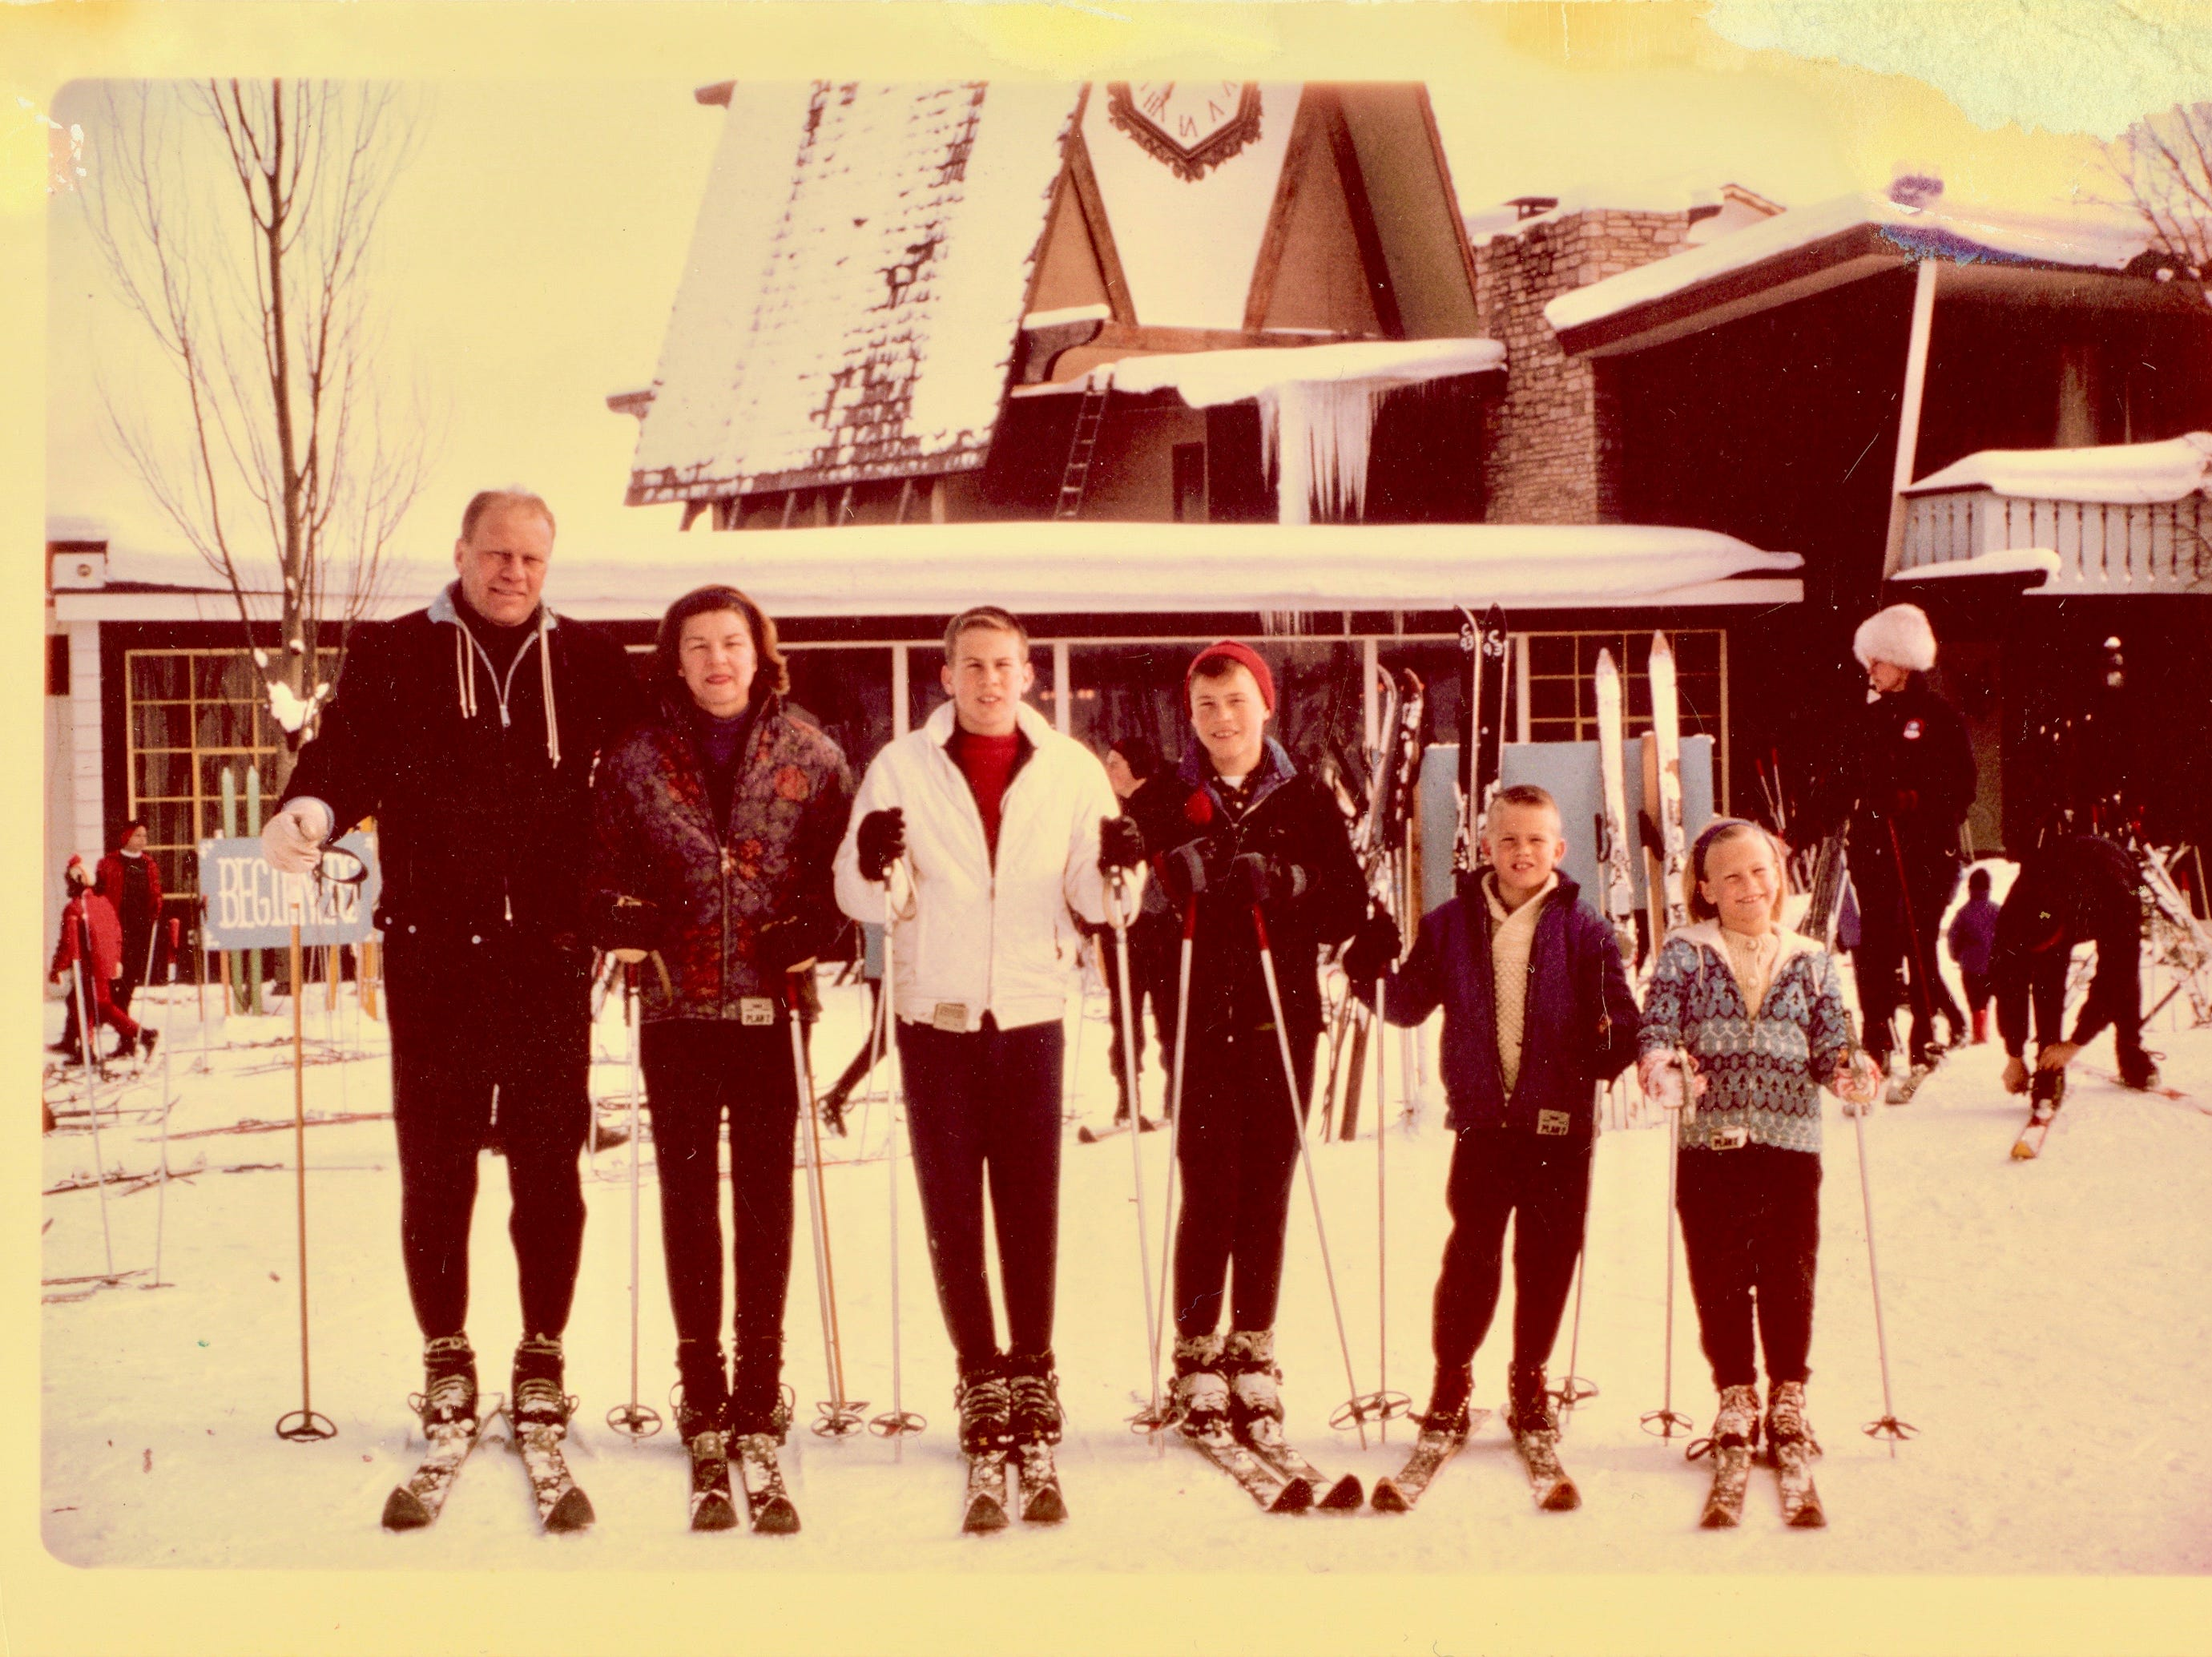 Gerald R. Ford, Betty, Michael, John, Steven and Susan pose at Boyne Mountain in 1965.